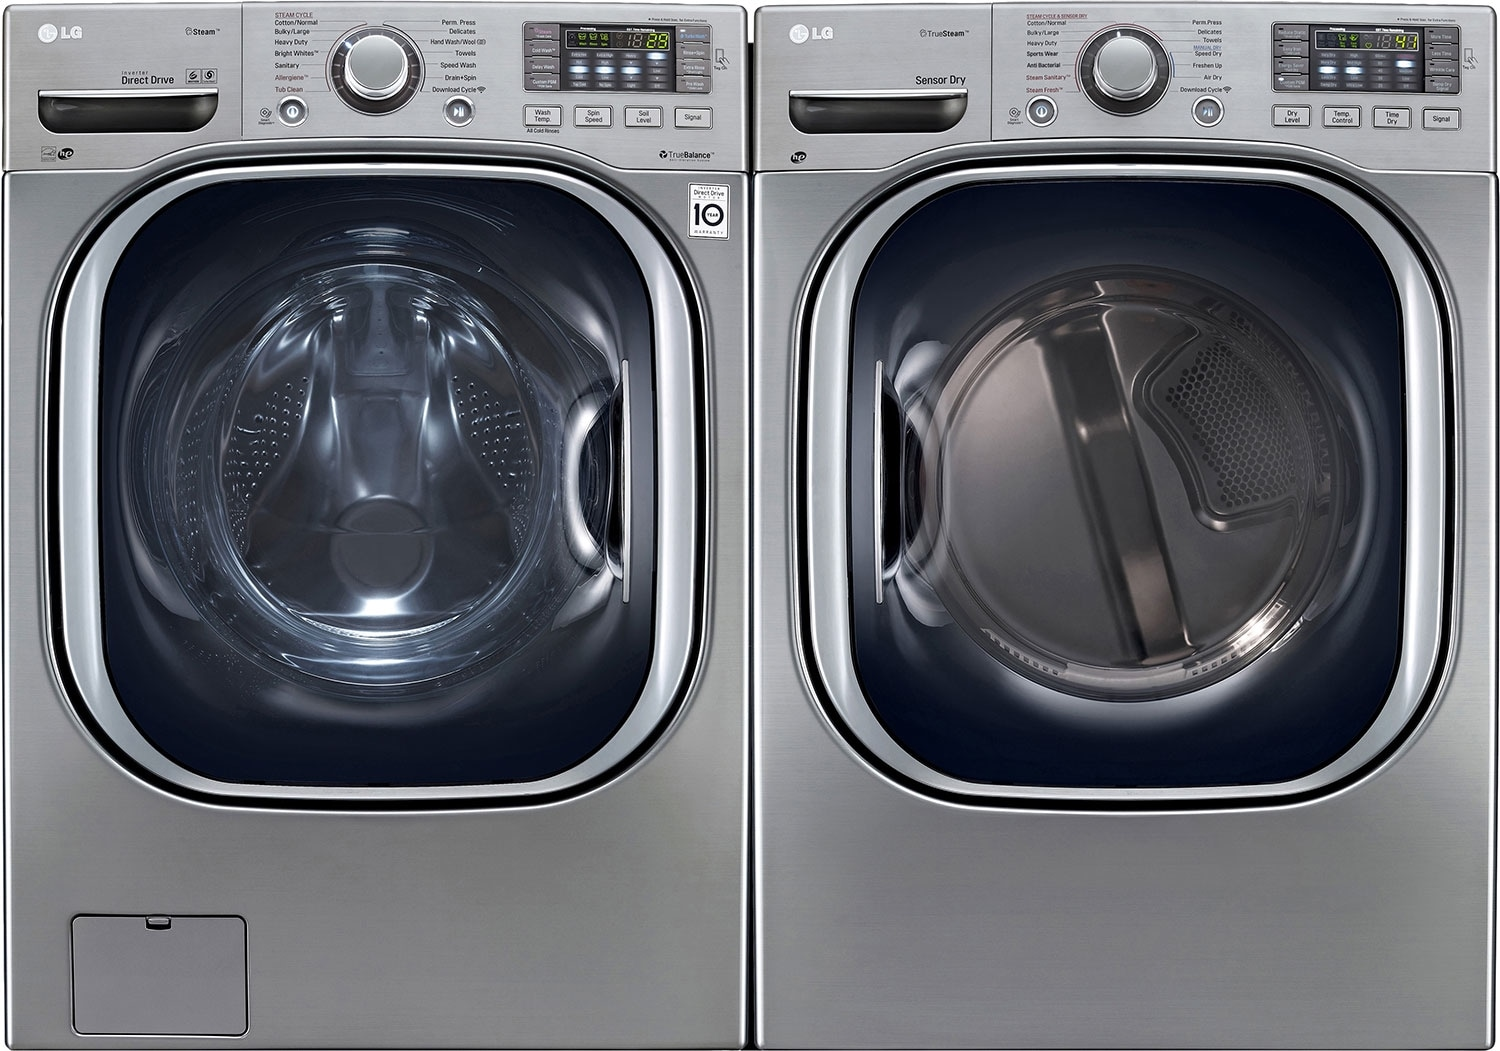 LG 5.2 Cu. Ft. Front-Load Washer and 7.4 Cu. Ft. Electric Dryer – Graphite Steel